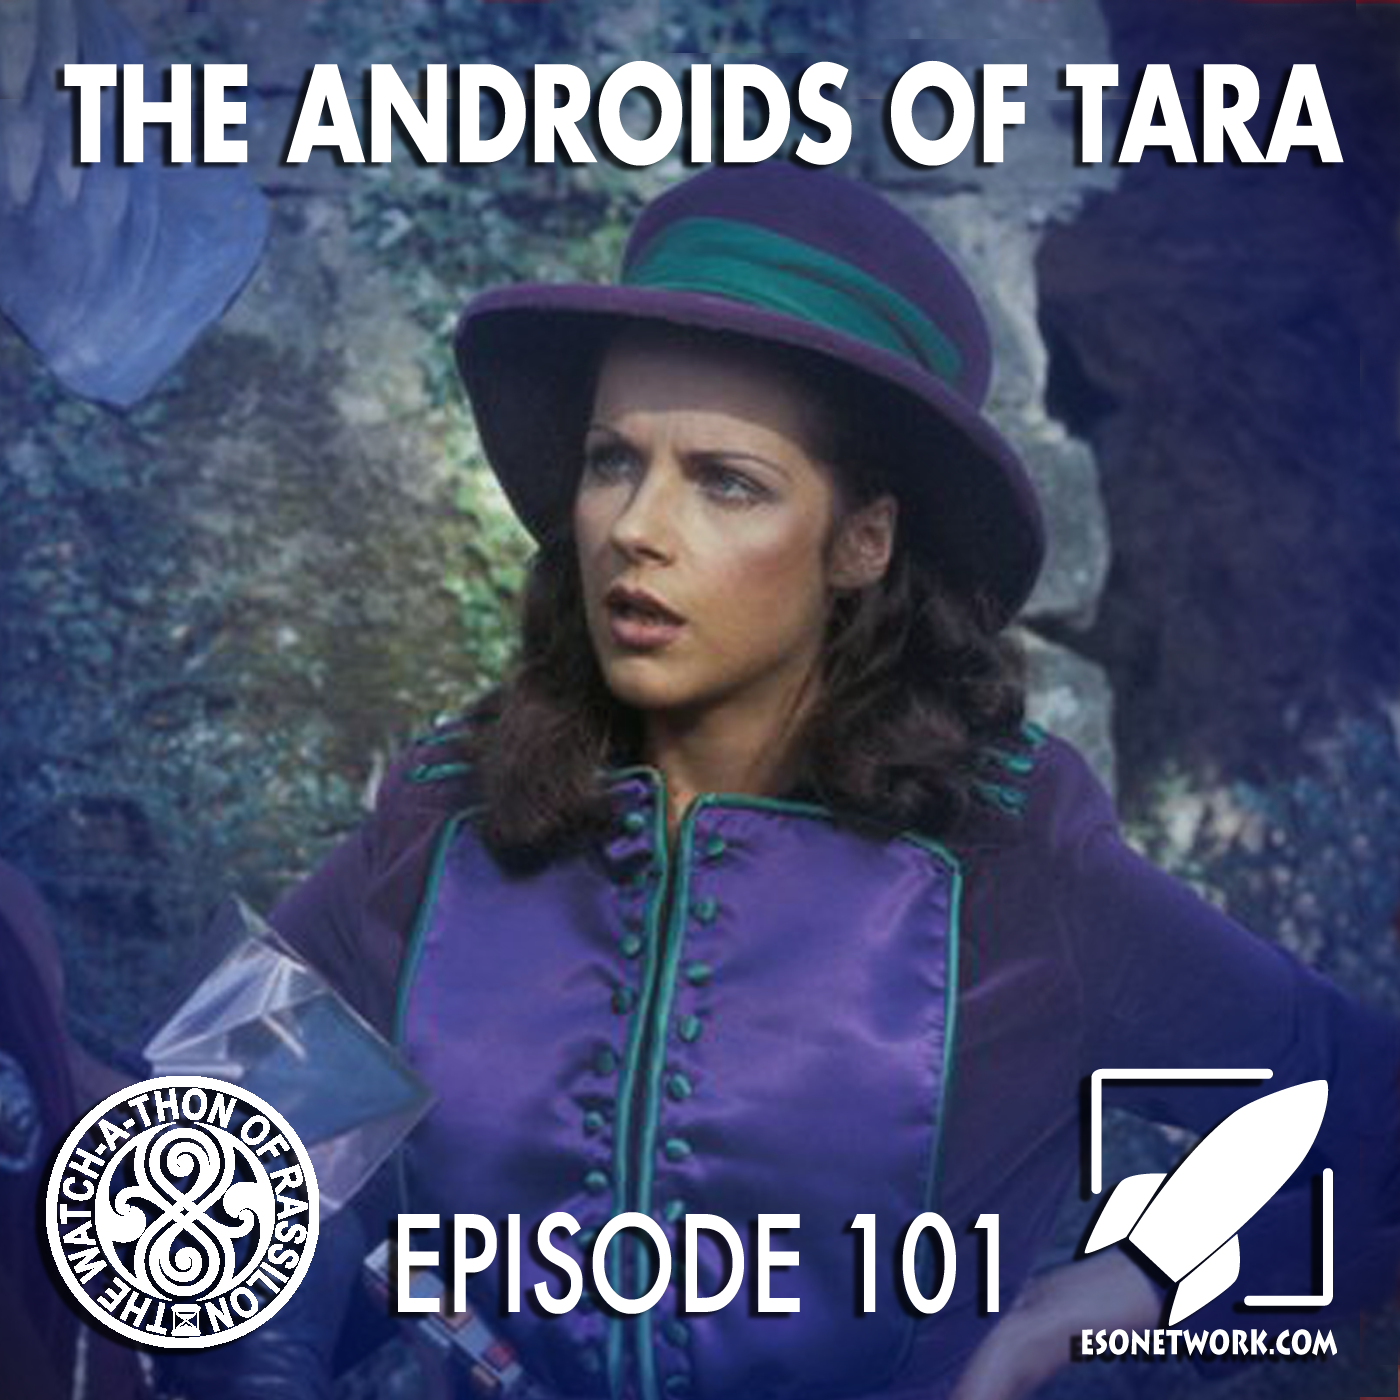 The Watch-A-Thon of Rassilon: Episode 101: The Androids of Tara